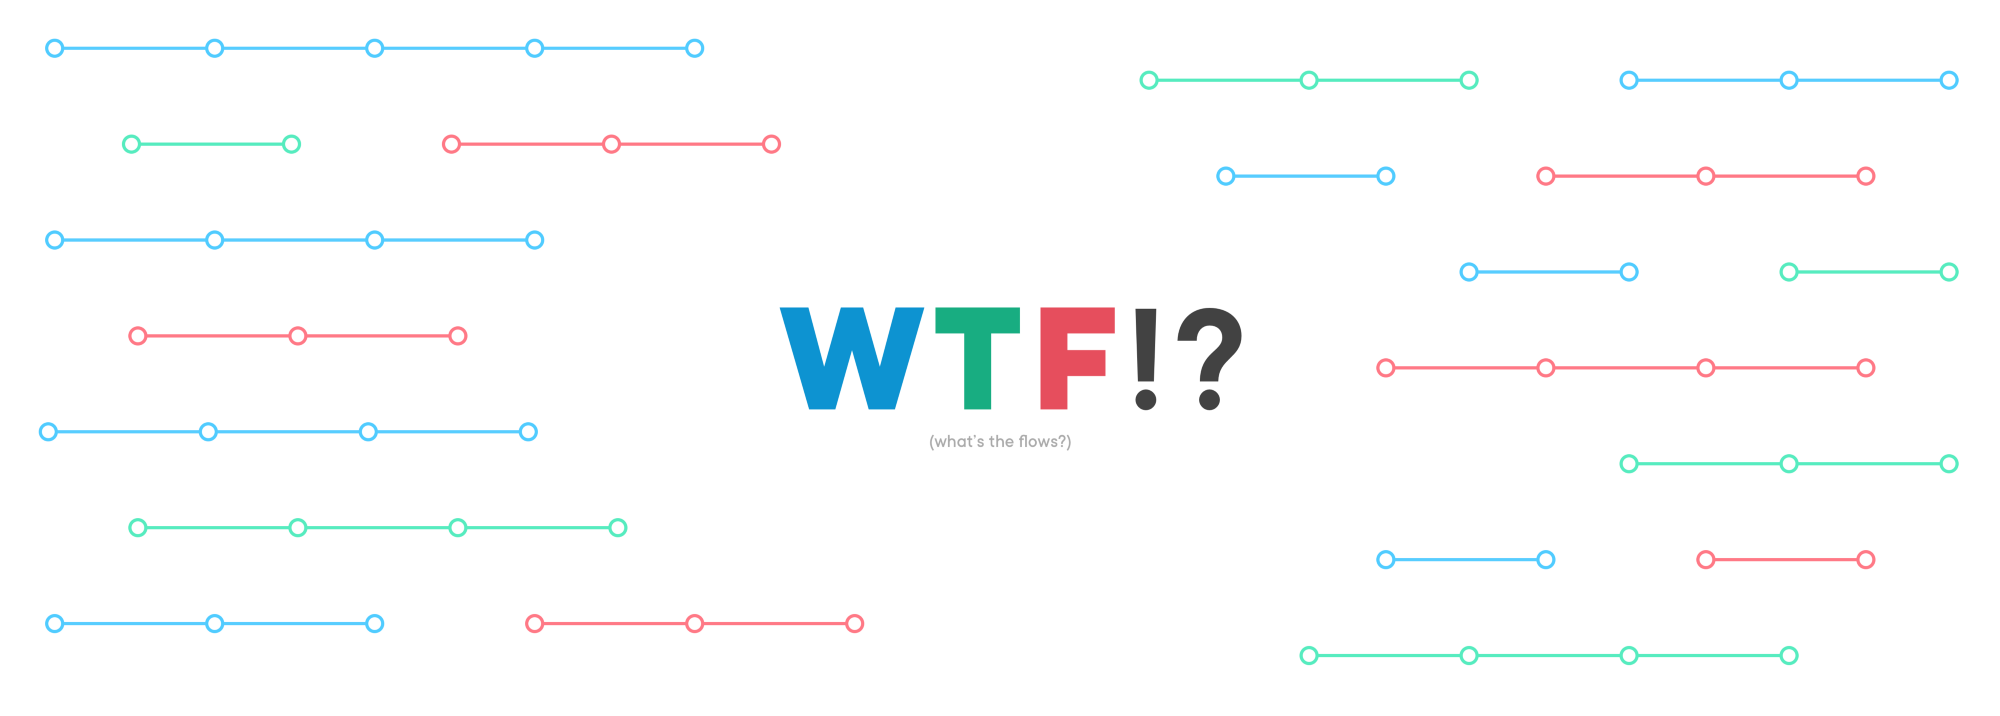 The biggest WTF in design right now